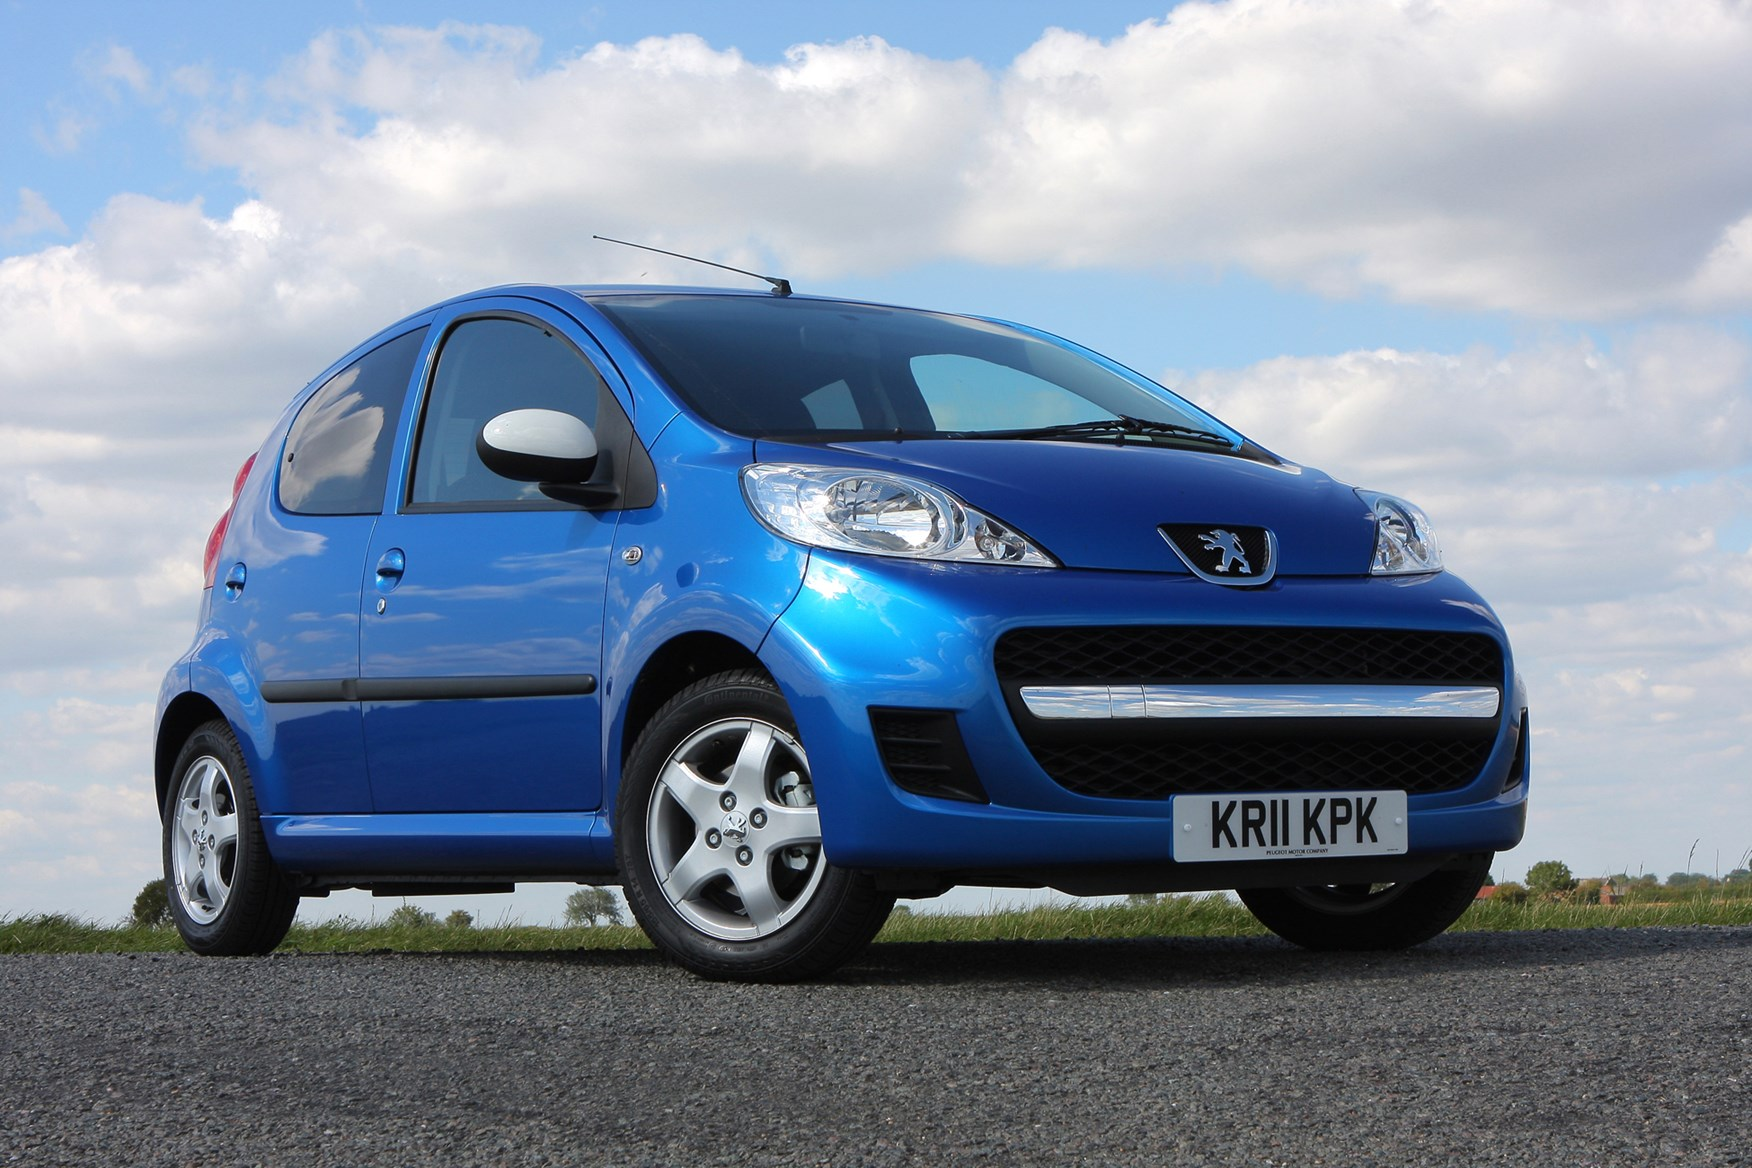 peugeot 107 hatchback 2005 2014 driving performance parkers. Black Bedroom Furniture Sets. Home Design Ideas